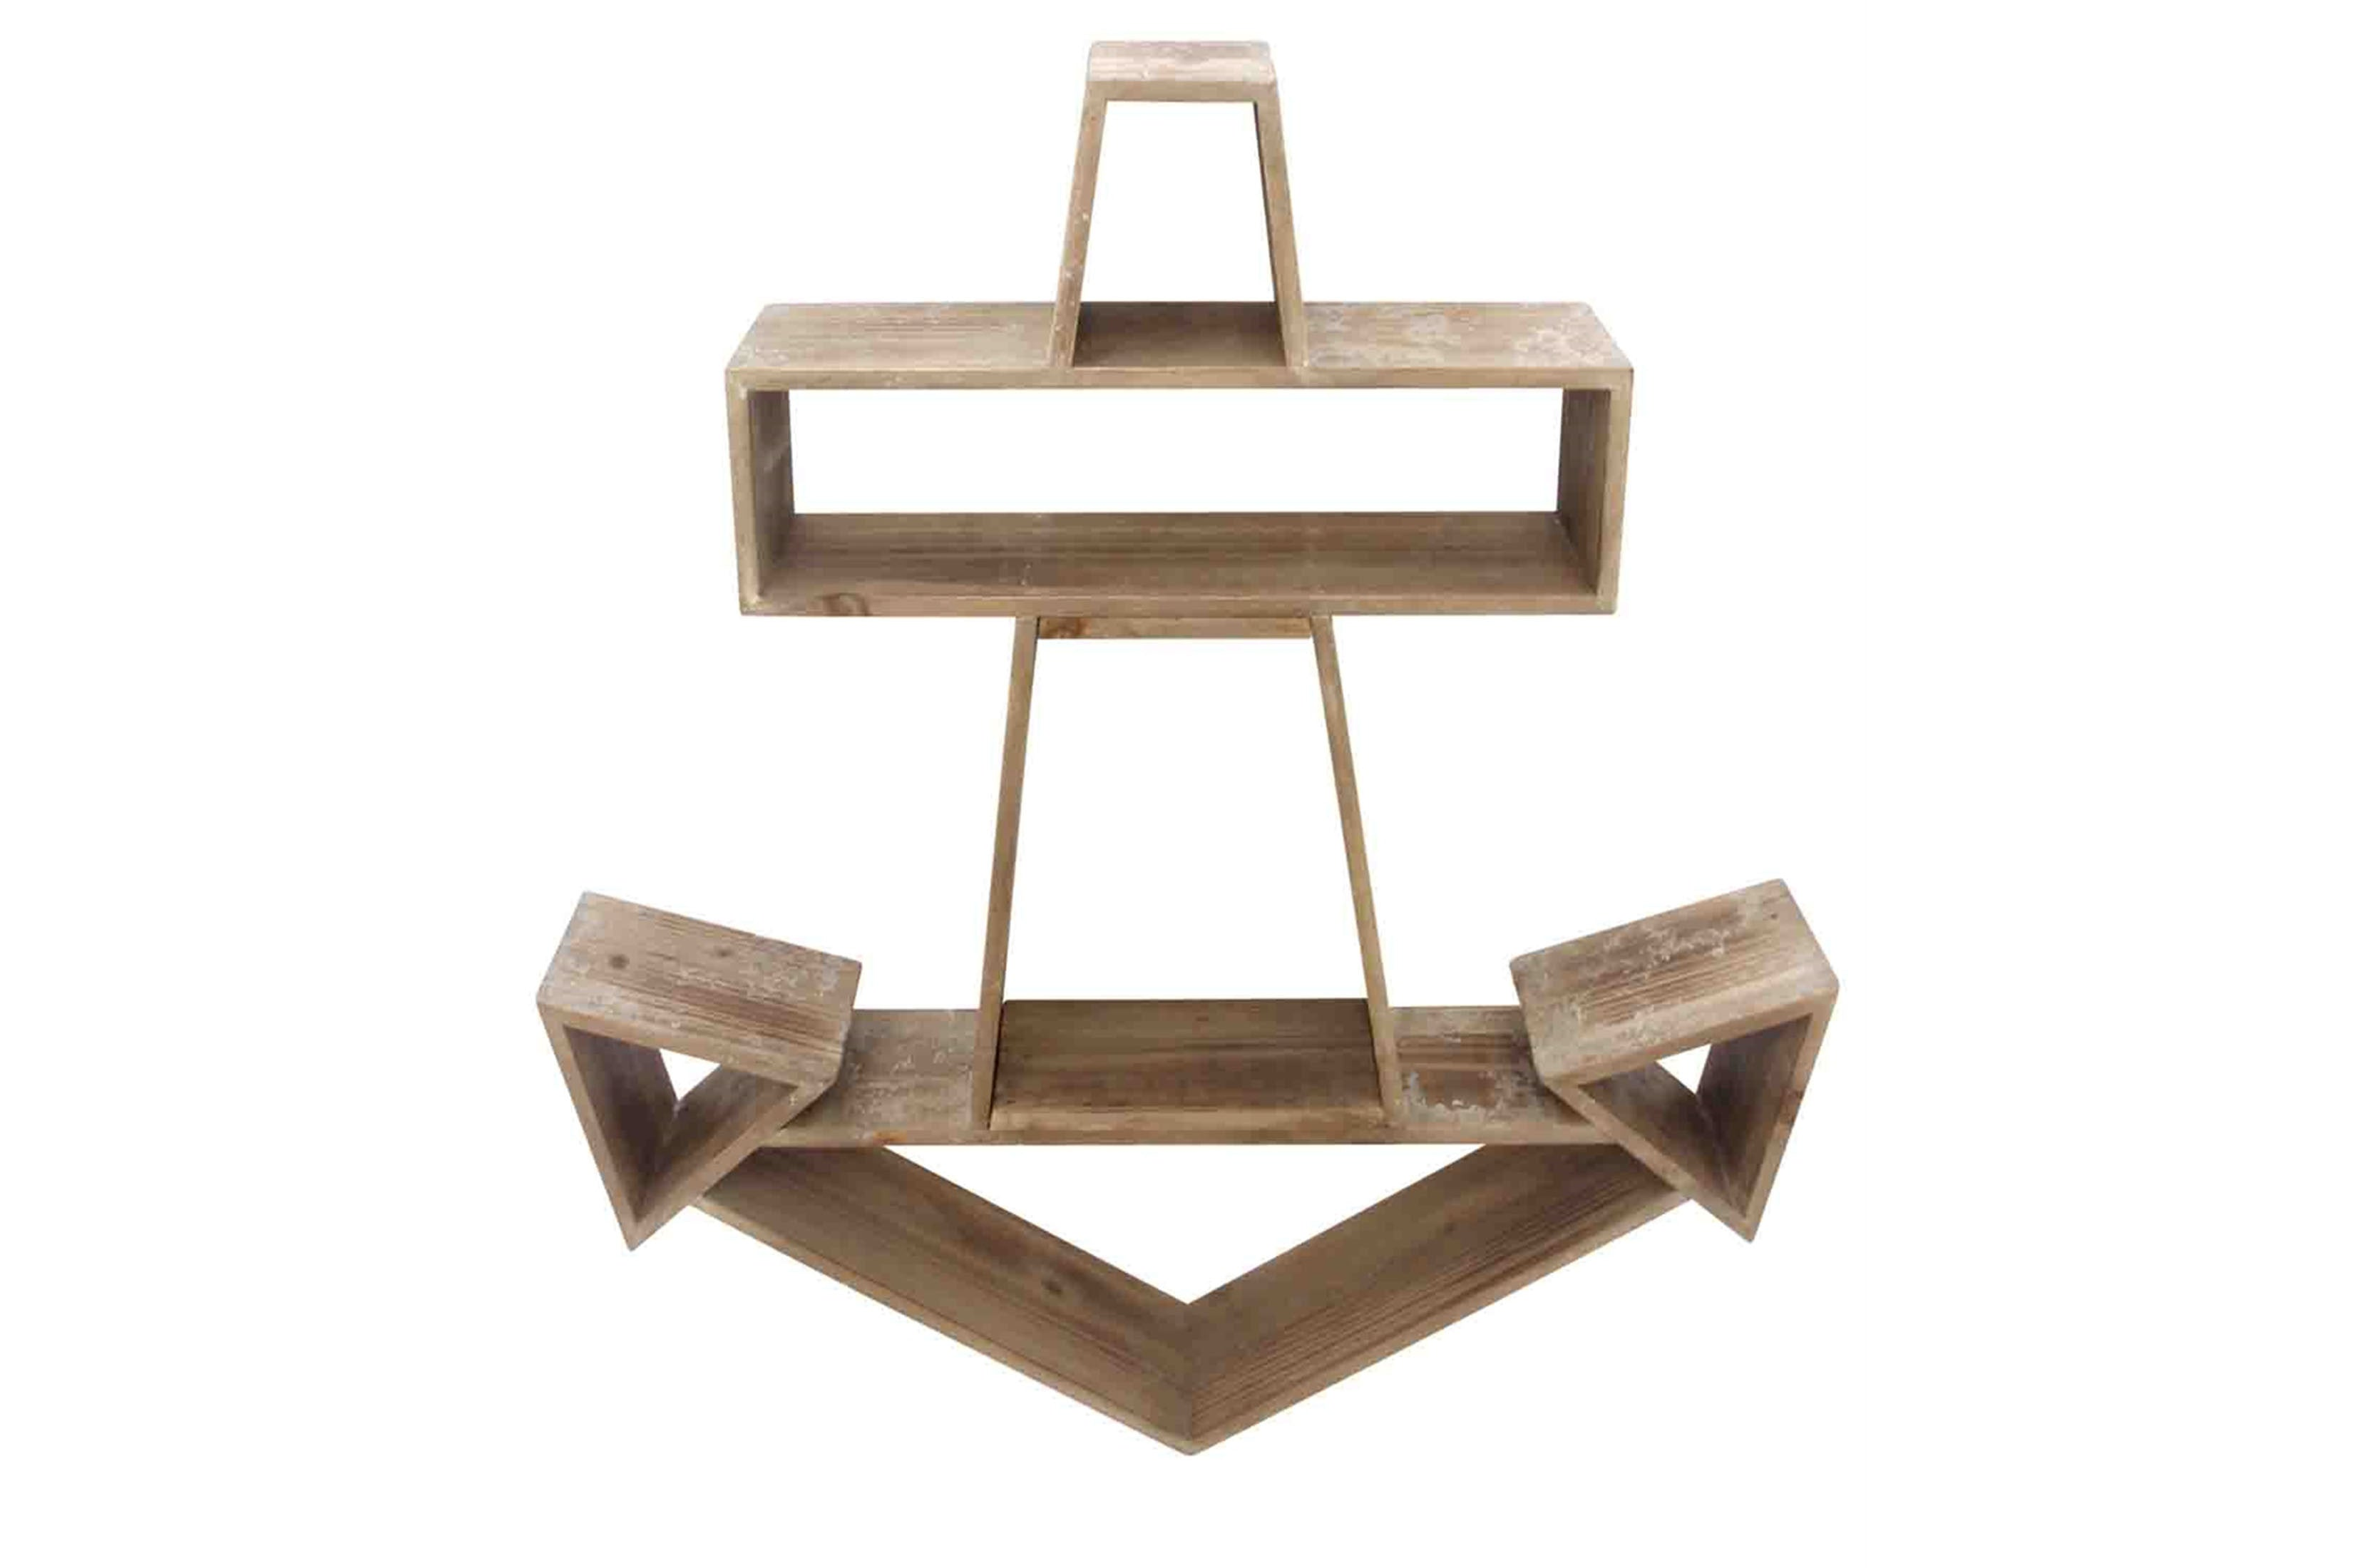 Wooden anchor wall shelf by sagebrook home dizzy rock furniture anchor wall shelf amipublicfo Choice Image